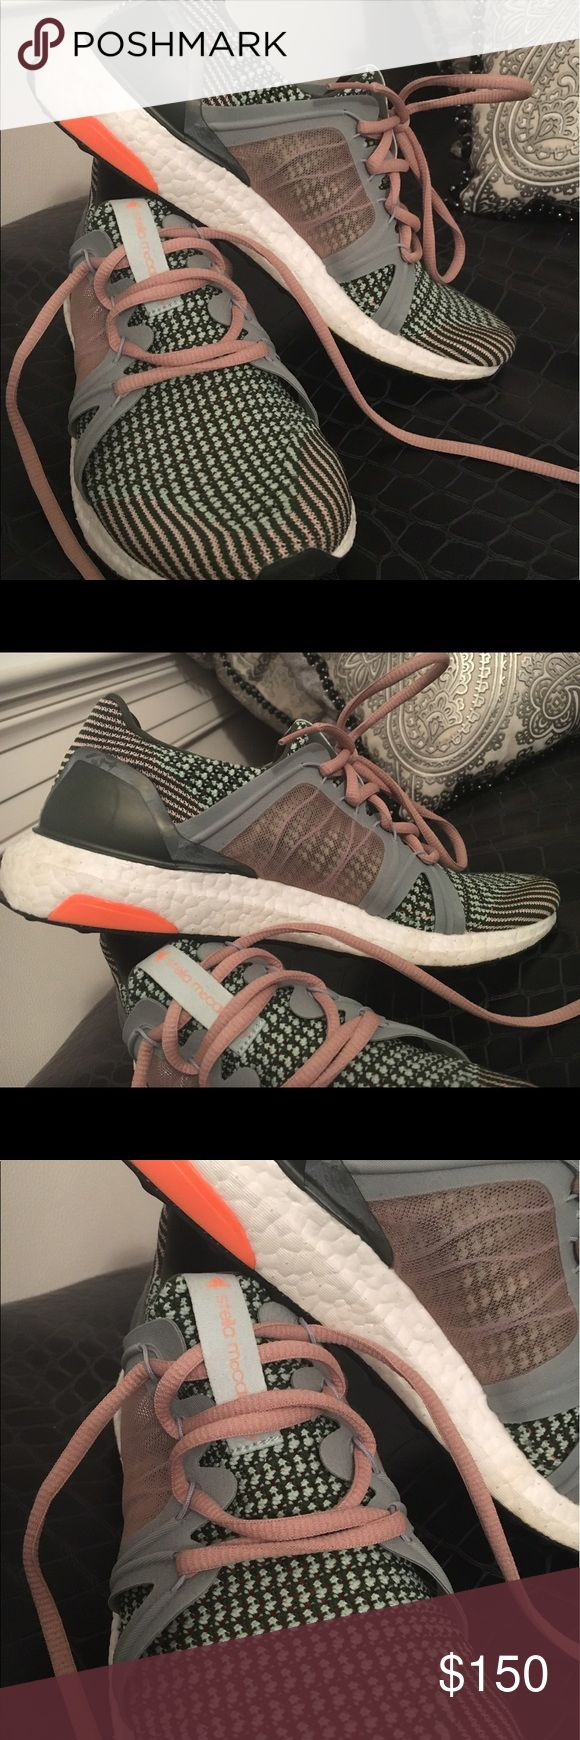 adidas by Stella McCartney boost sneakers Multi color knit ultra boosts by Stella McCartney for adidas Adidas by Stella McCartney Shoes Athletic Shoes